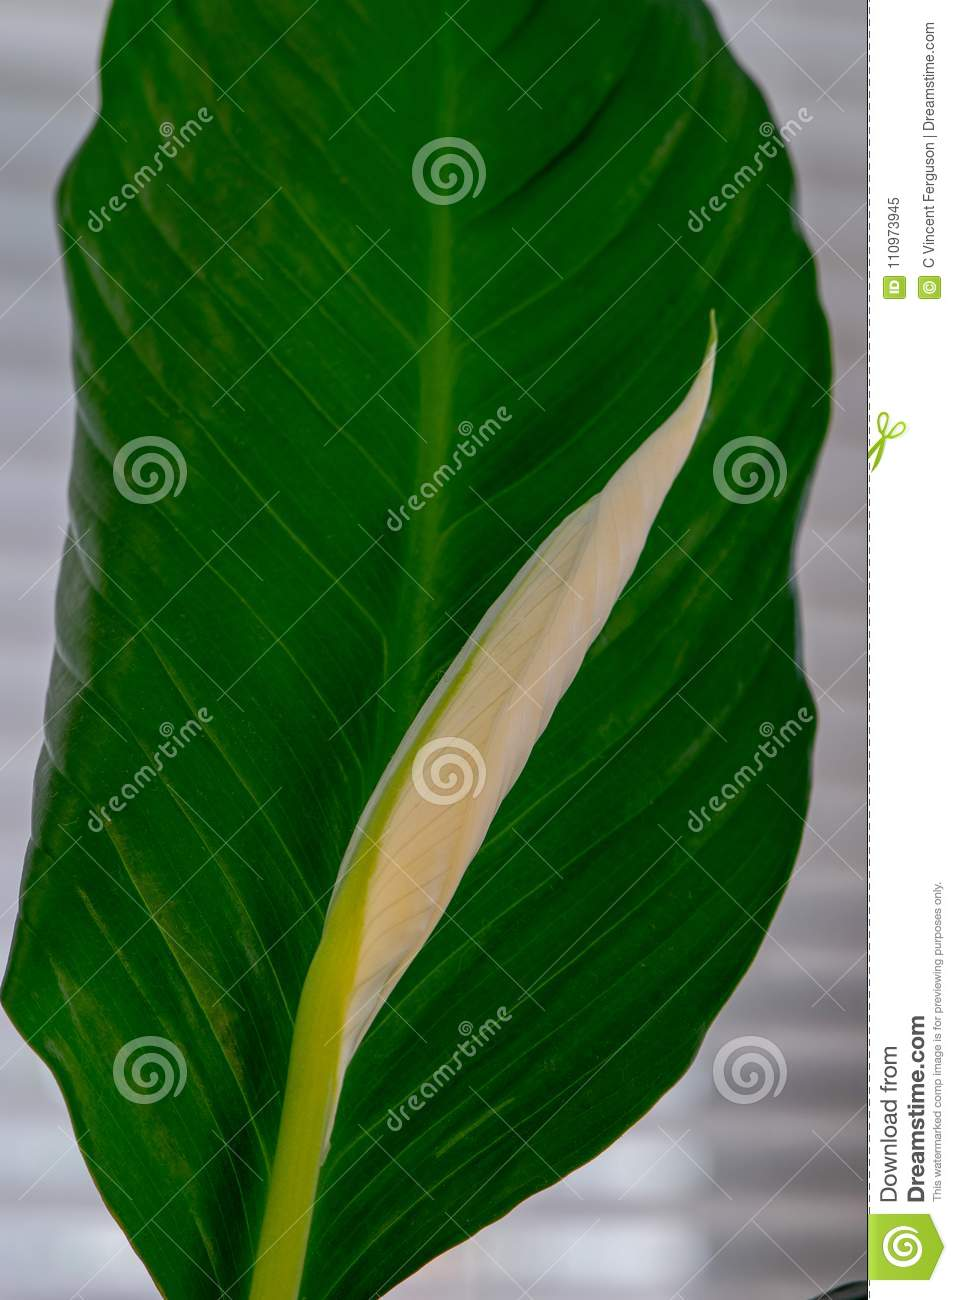 White peace lily bud with green leaf stock image image of liquid white peace lily bud with green leaf izmirmasajfo